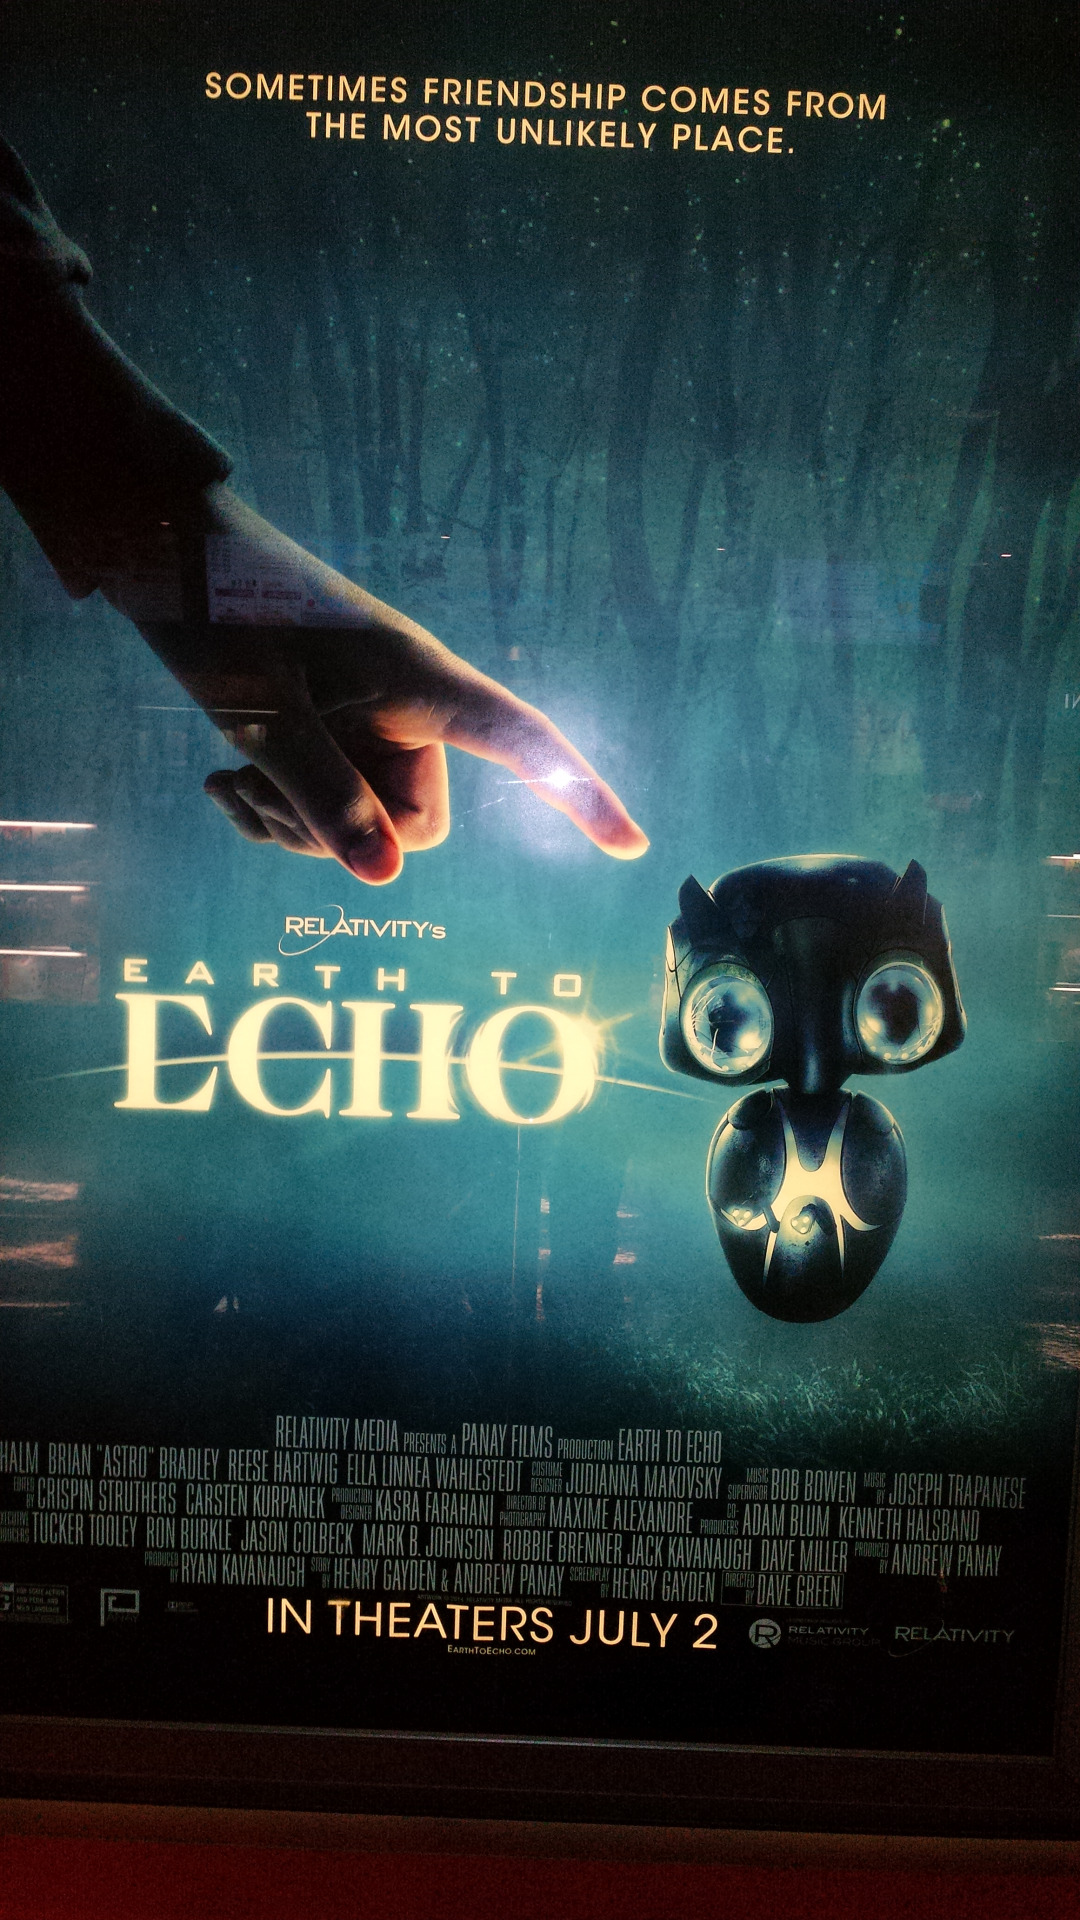 Check out this out of this world friend Directed by Dave Green 'Earth to Echo' hitting theaters this Wednesday!  callhimecho.com